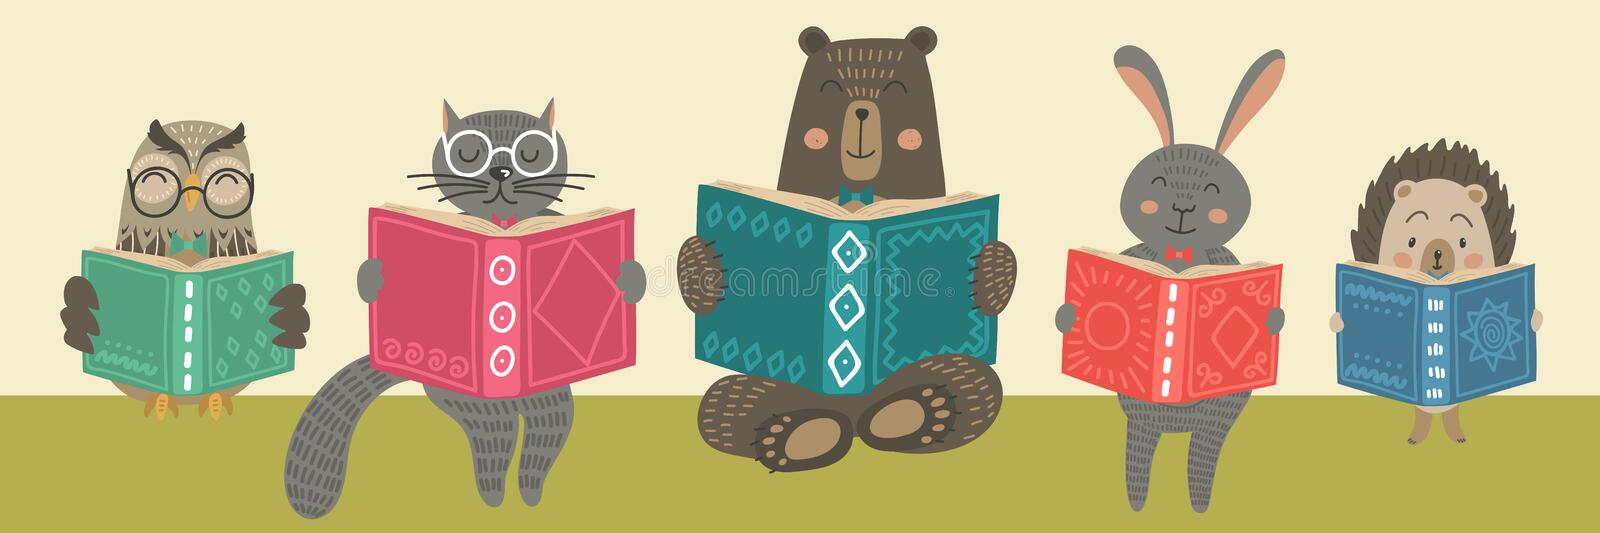 Cute animals readimg books. vector illustration